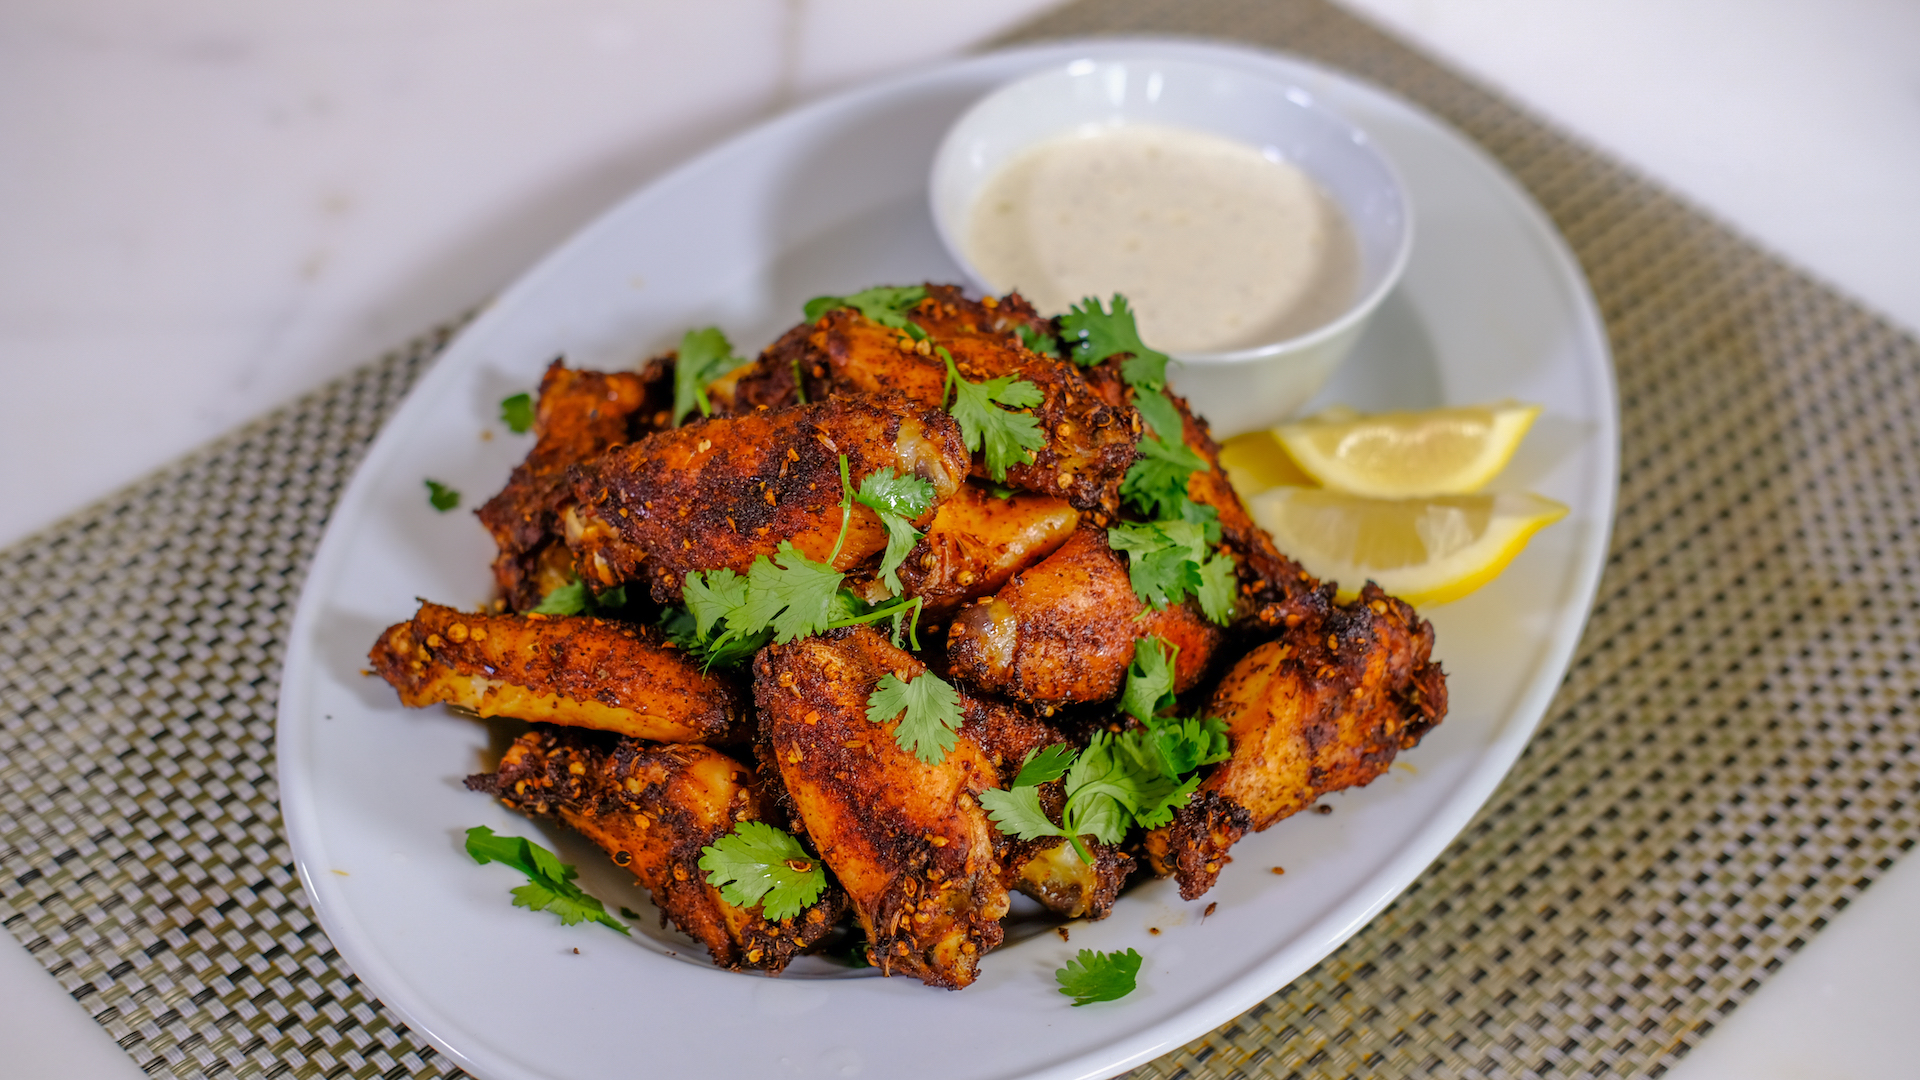 Dry rubbed Harissa Wings paired with lemon and Alabama White BBQ Sauce